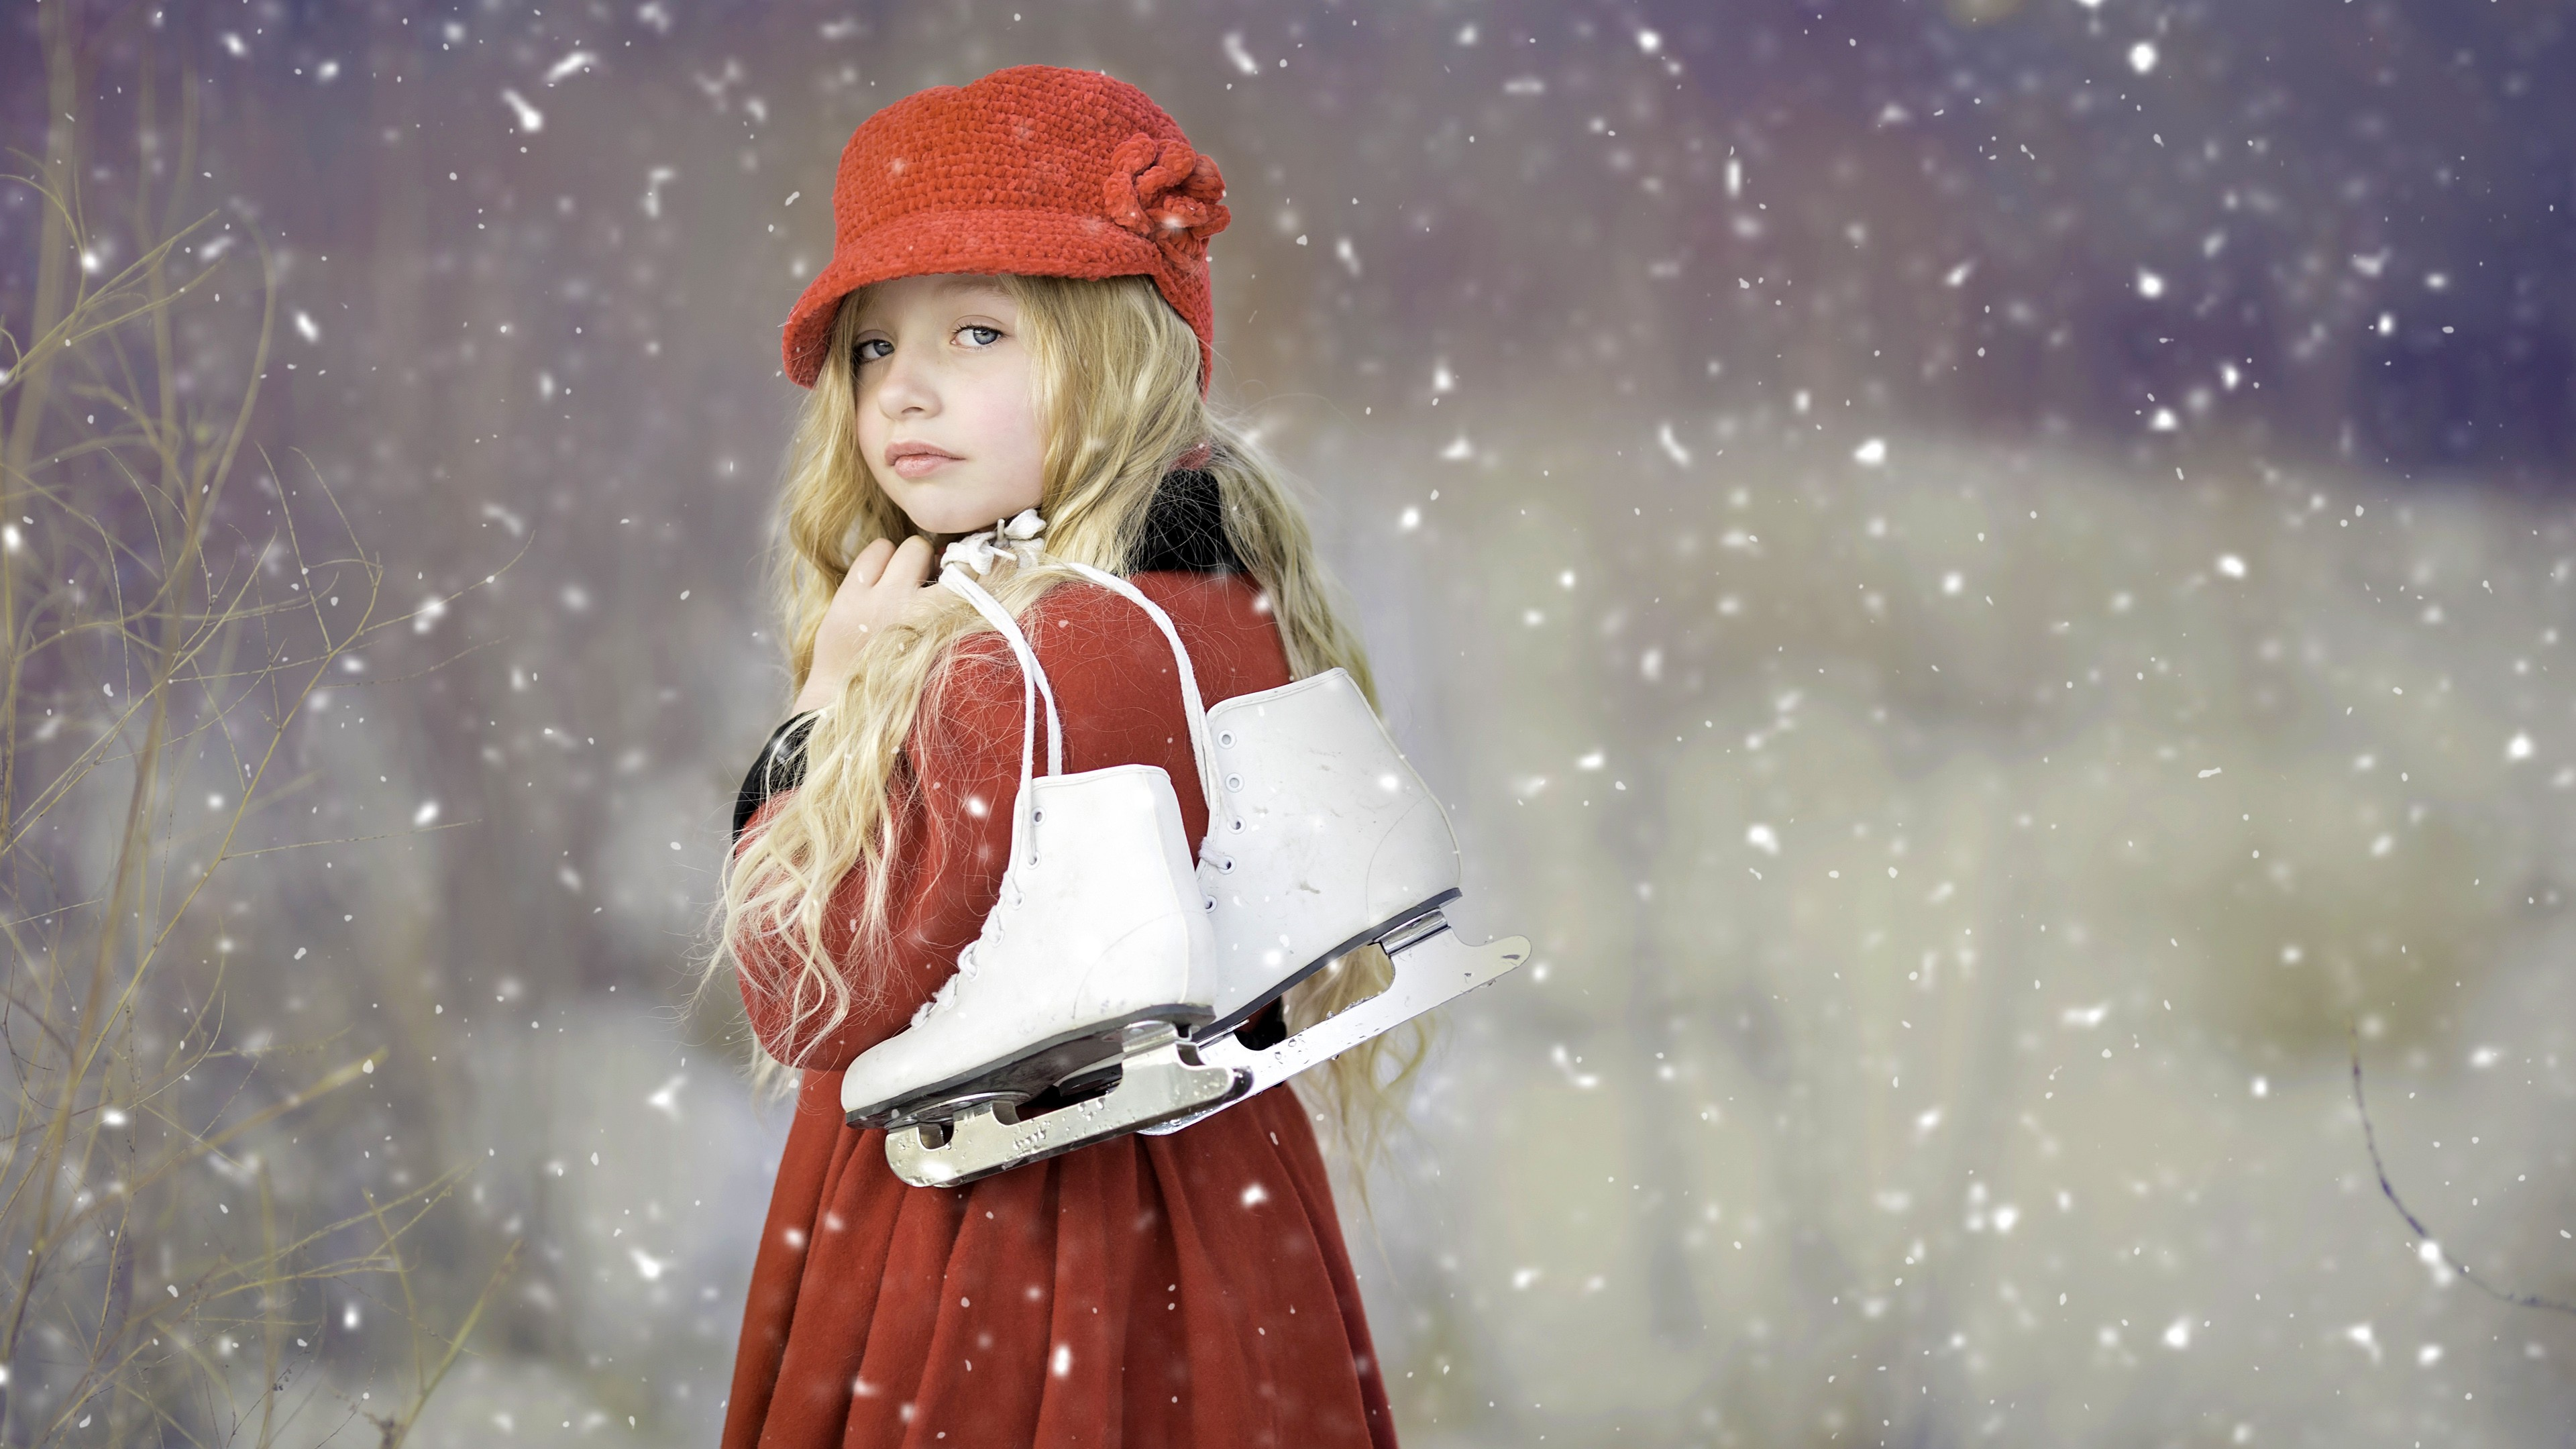 Cute Girl Kid Wallpapers Cute Girl Ice Skates Hd Cute 4k Wallpapers Images